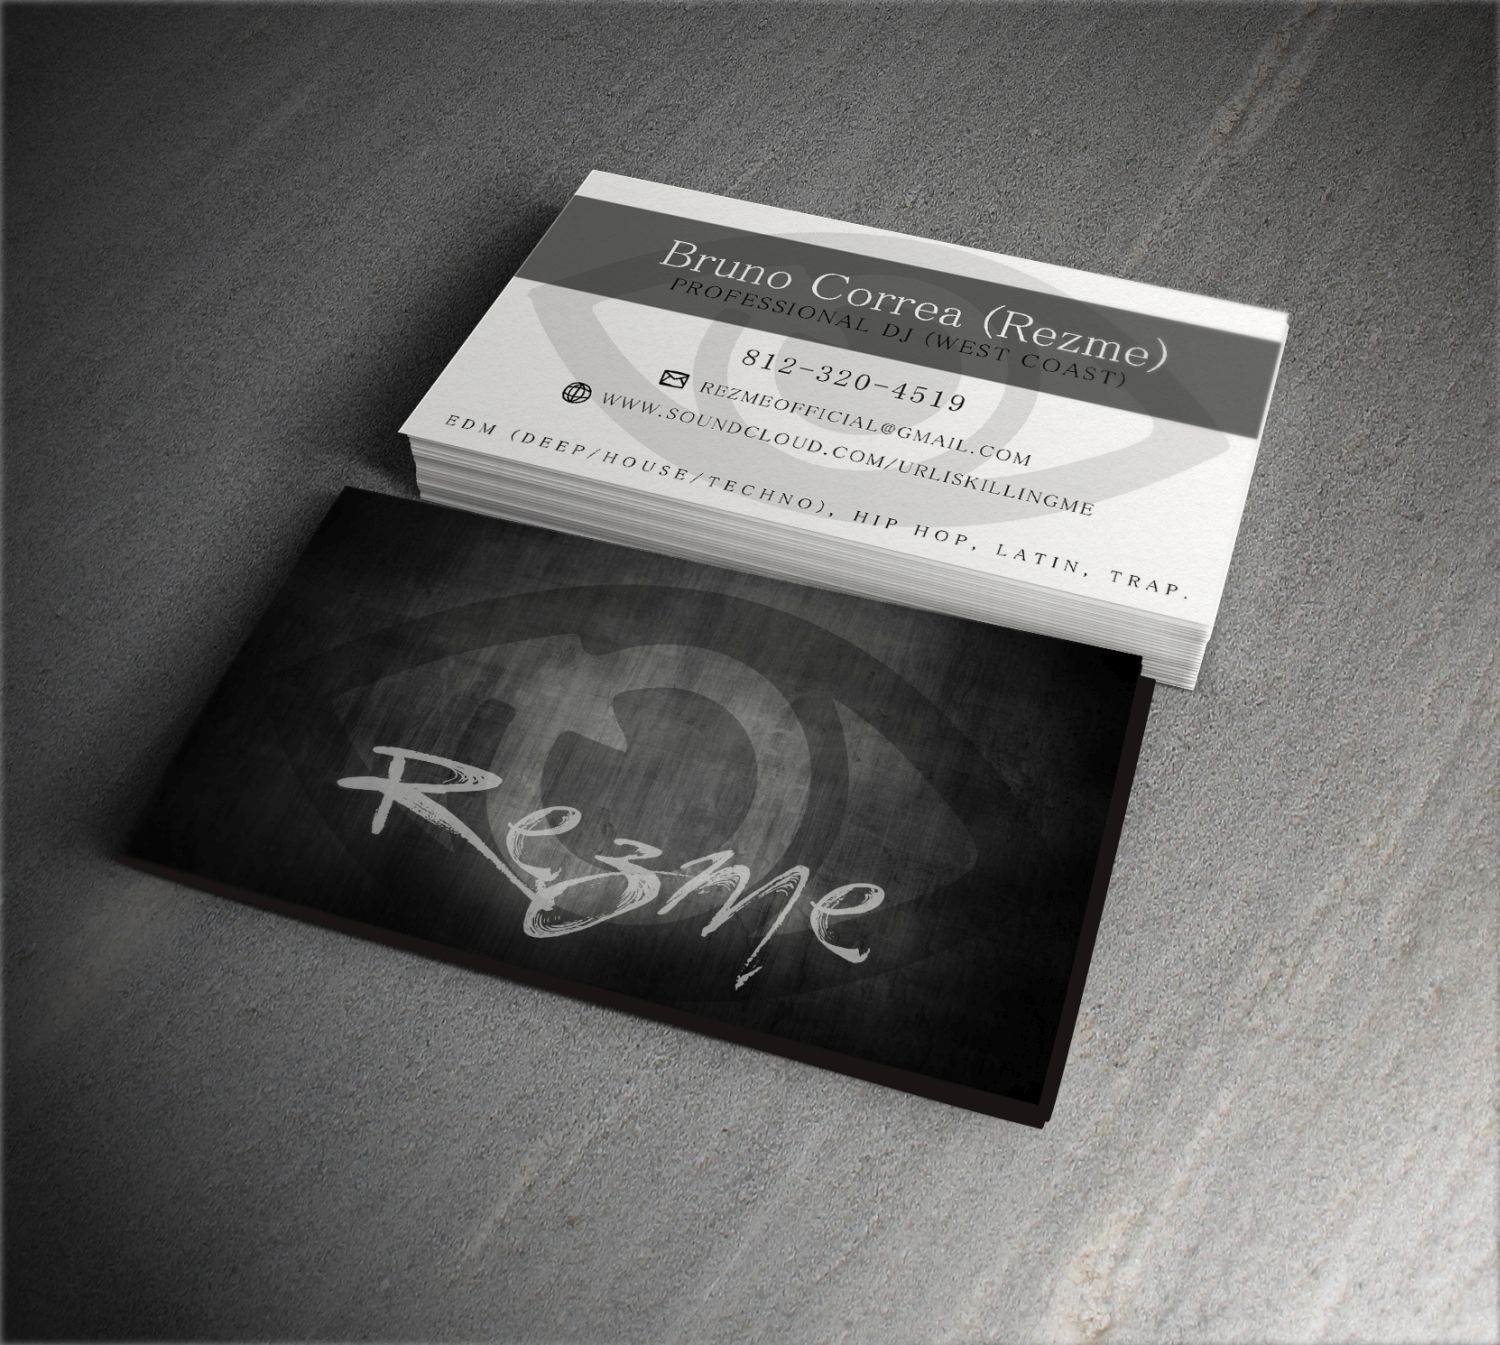 Business Business Card Design for a Company by Obskurnia | Design ...